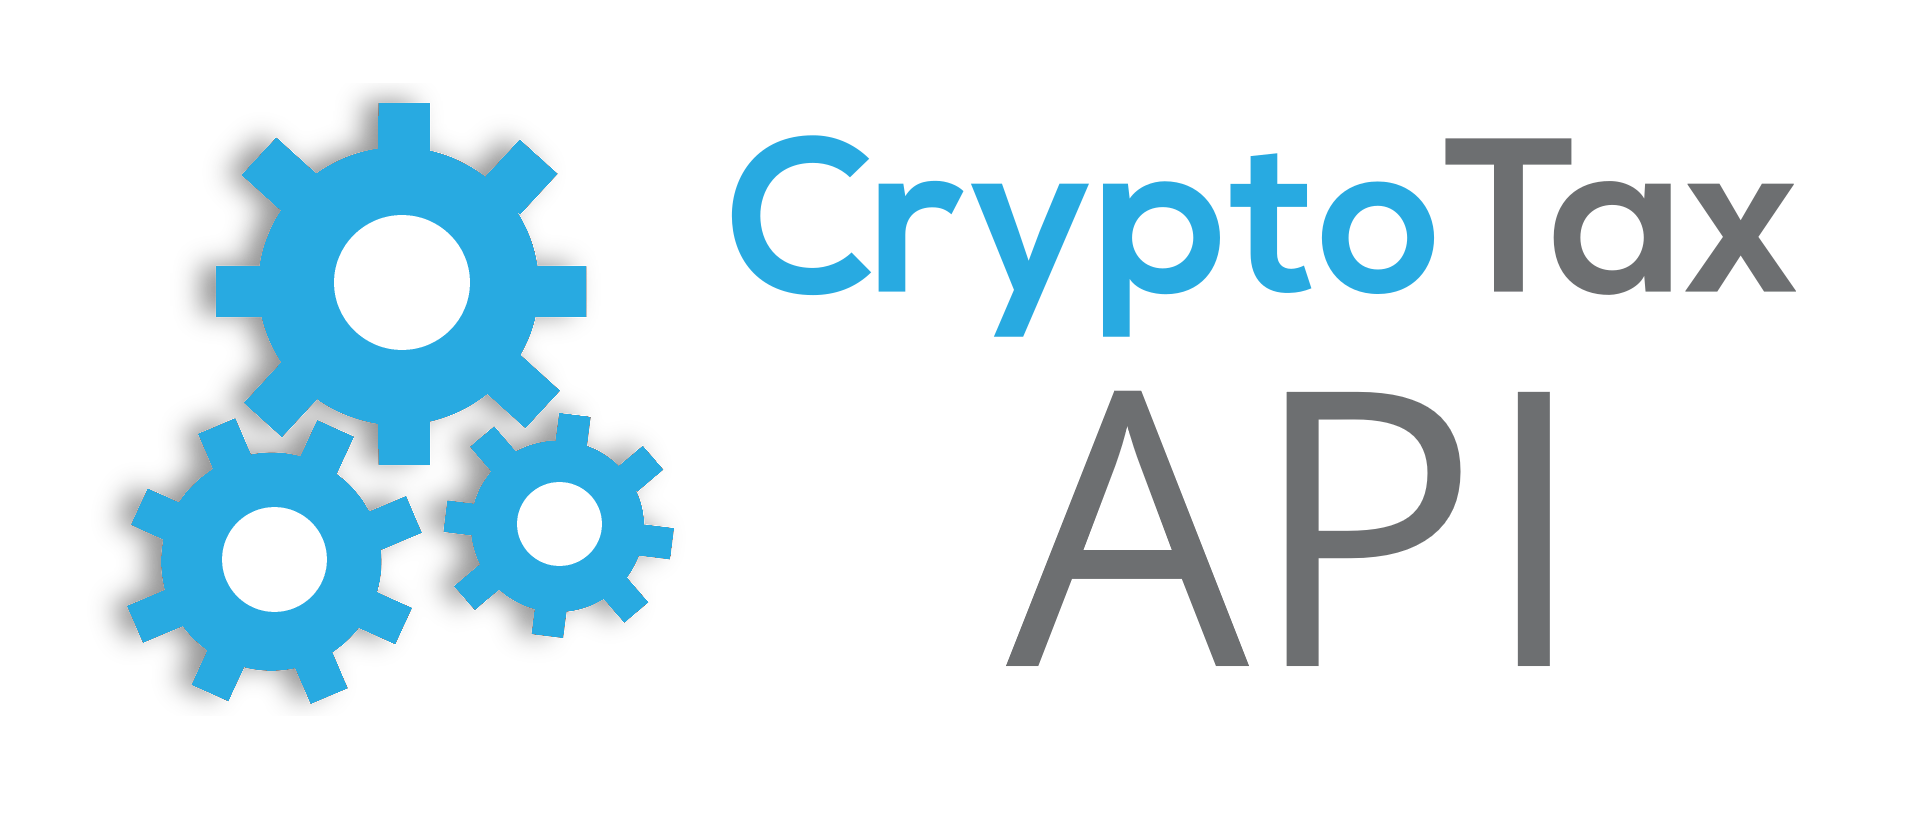 CryptoTax launches API platform for exchanges and other cryptocurrency service providers